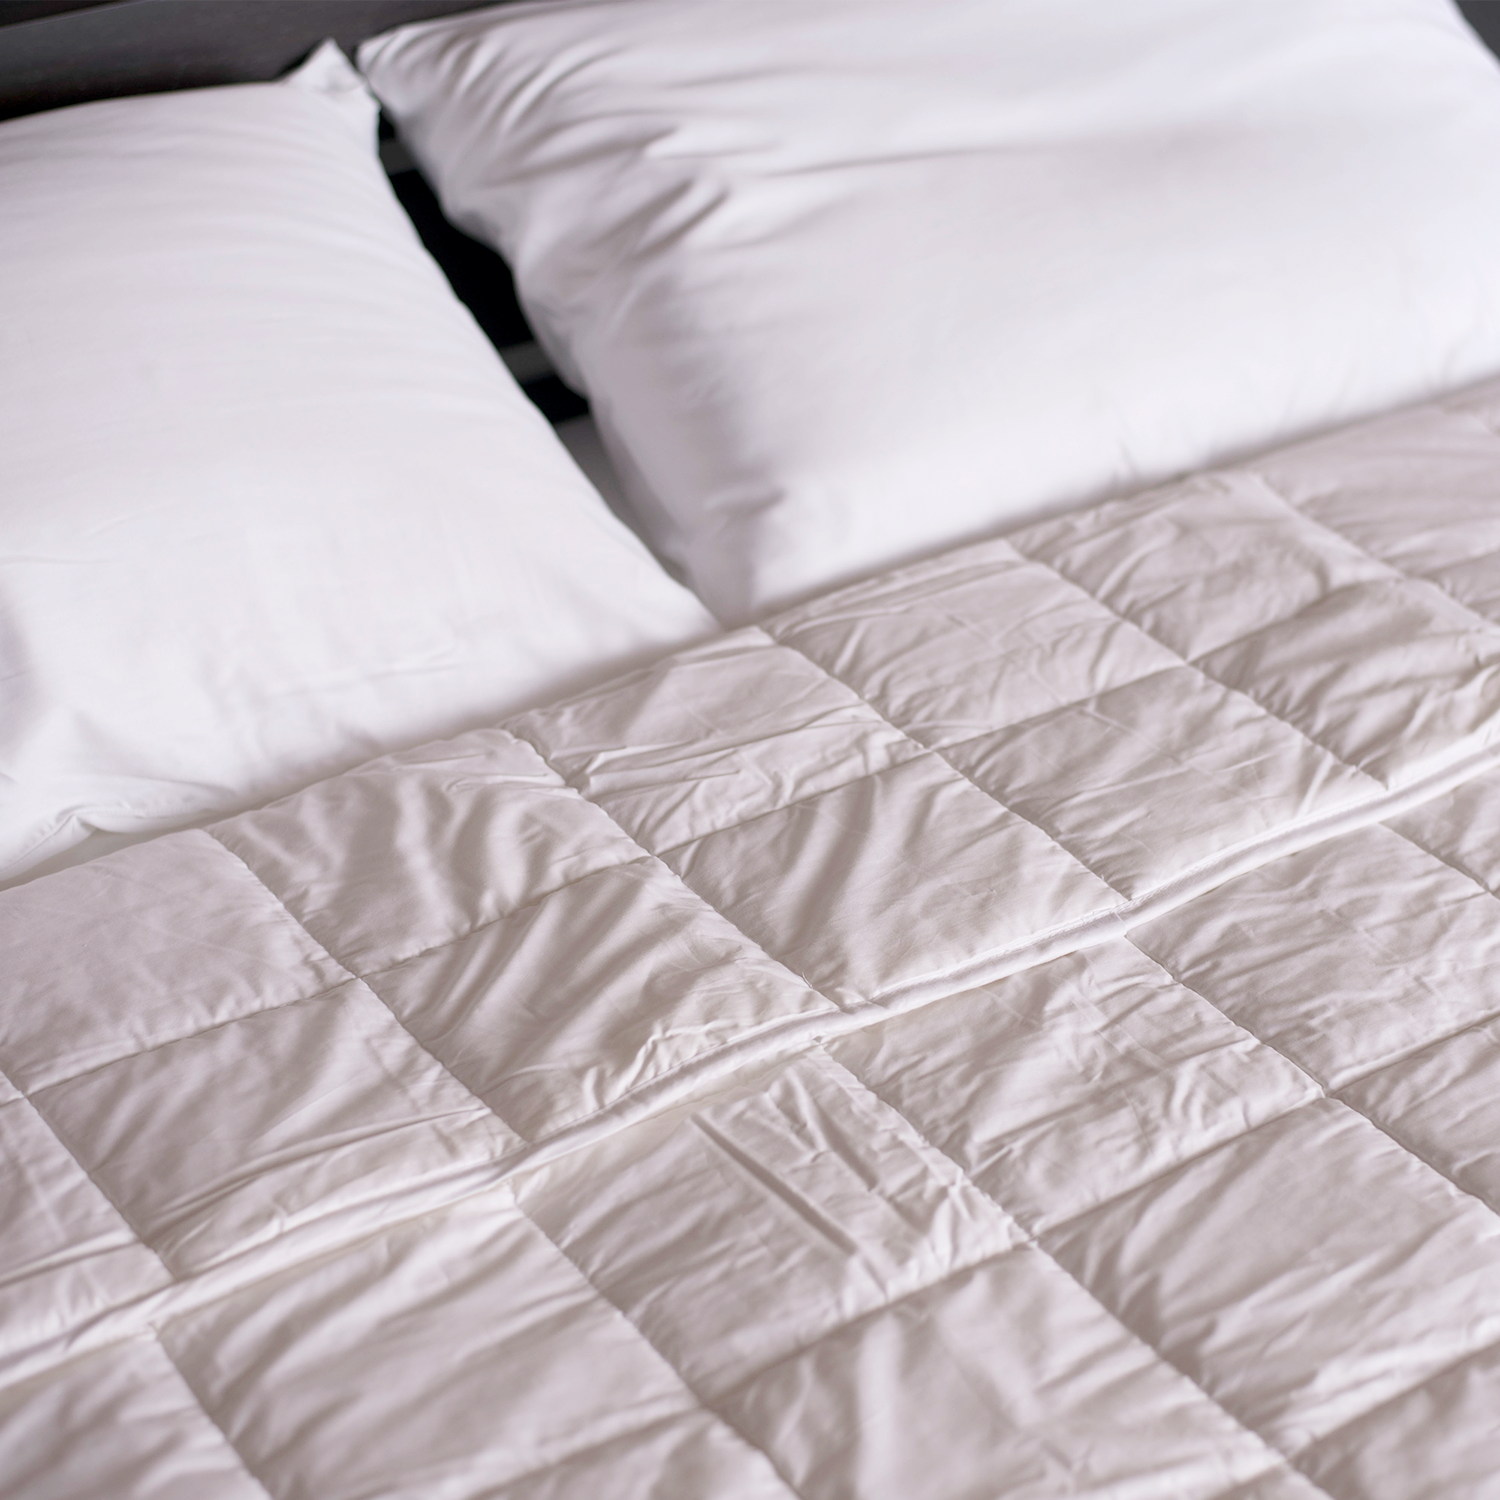 product mattress pad sb cp wool cover washable category index page name pure id wmp comfort by